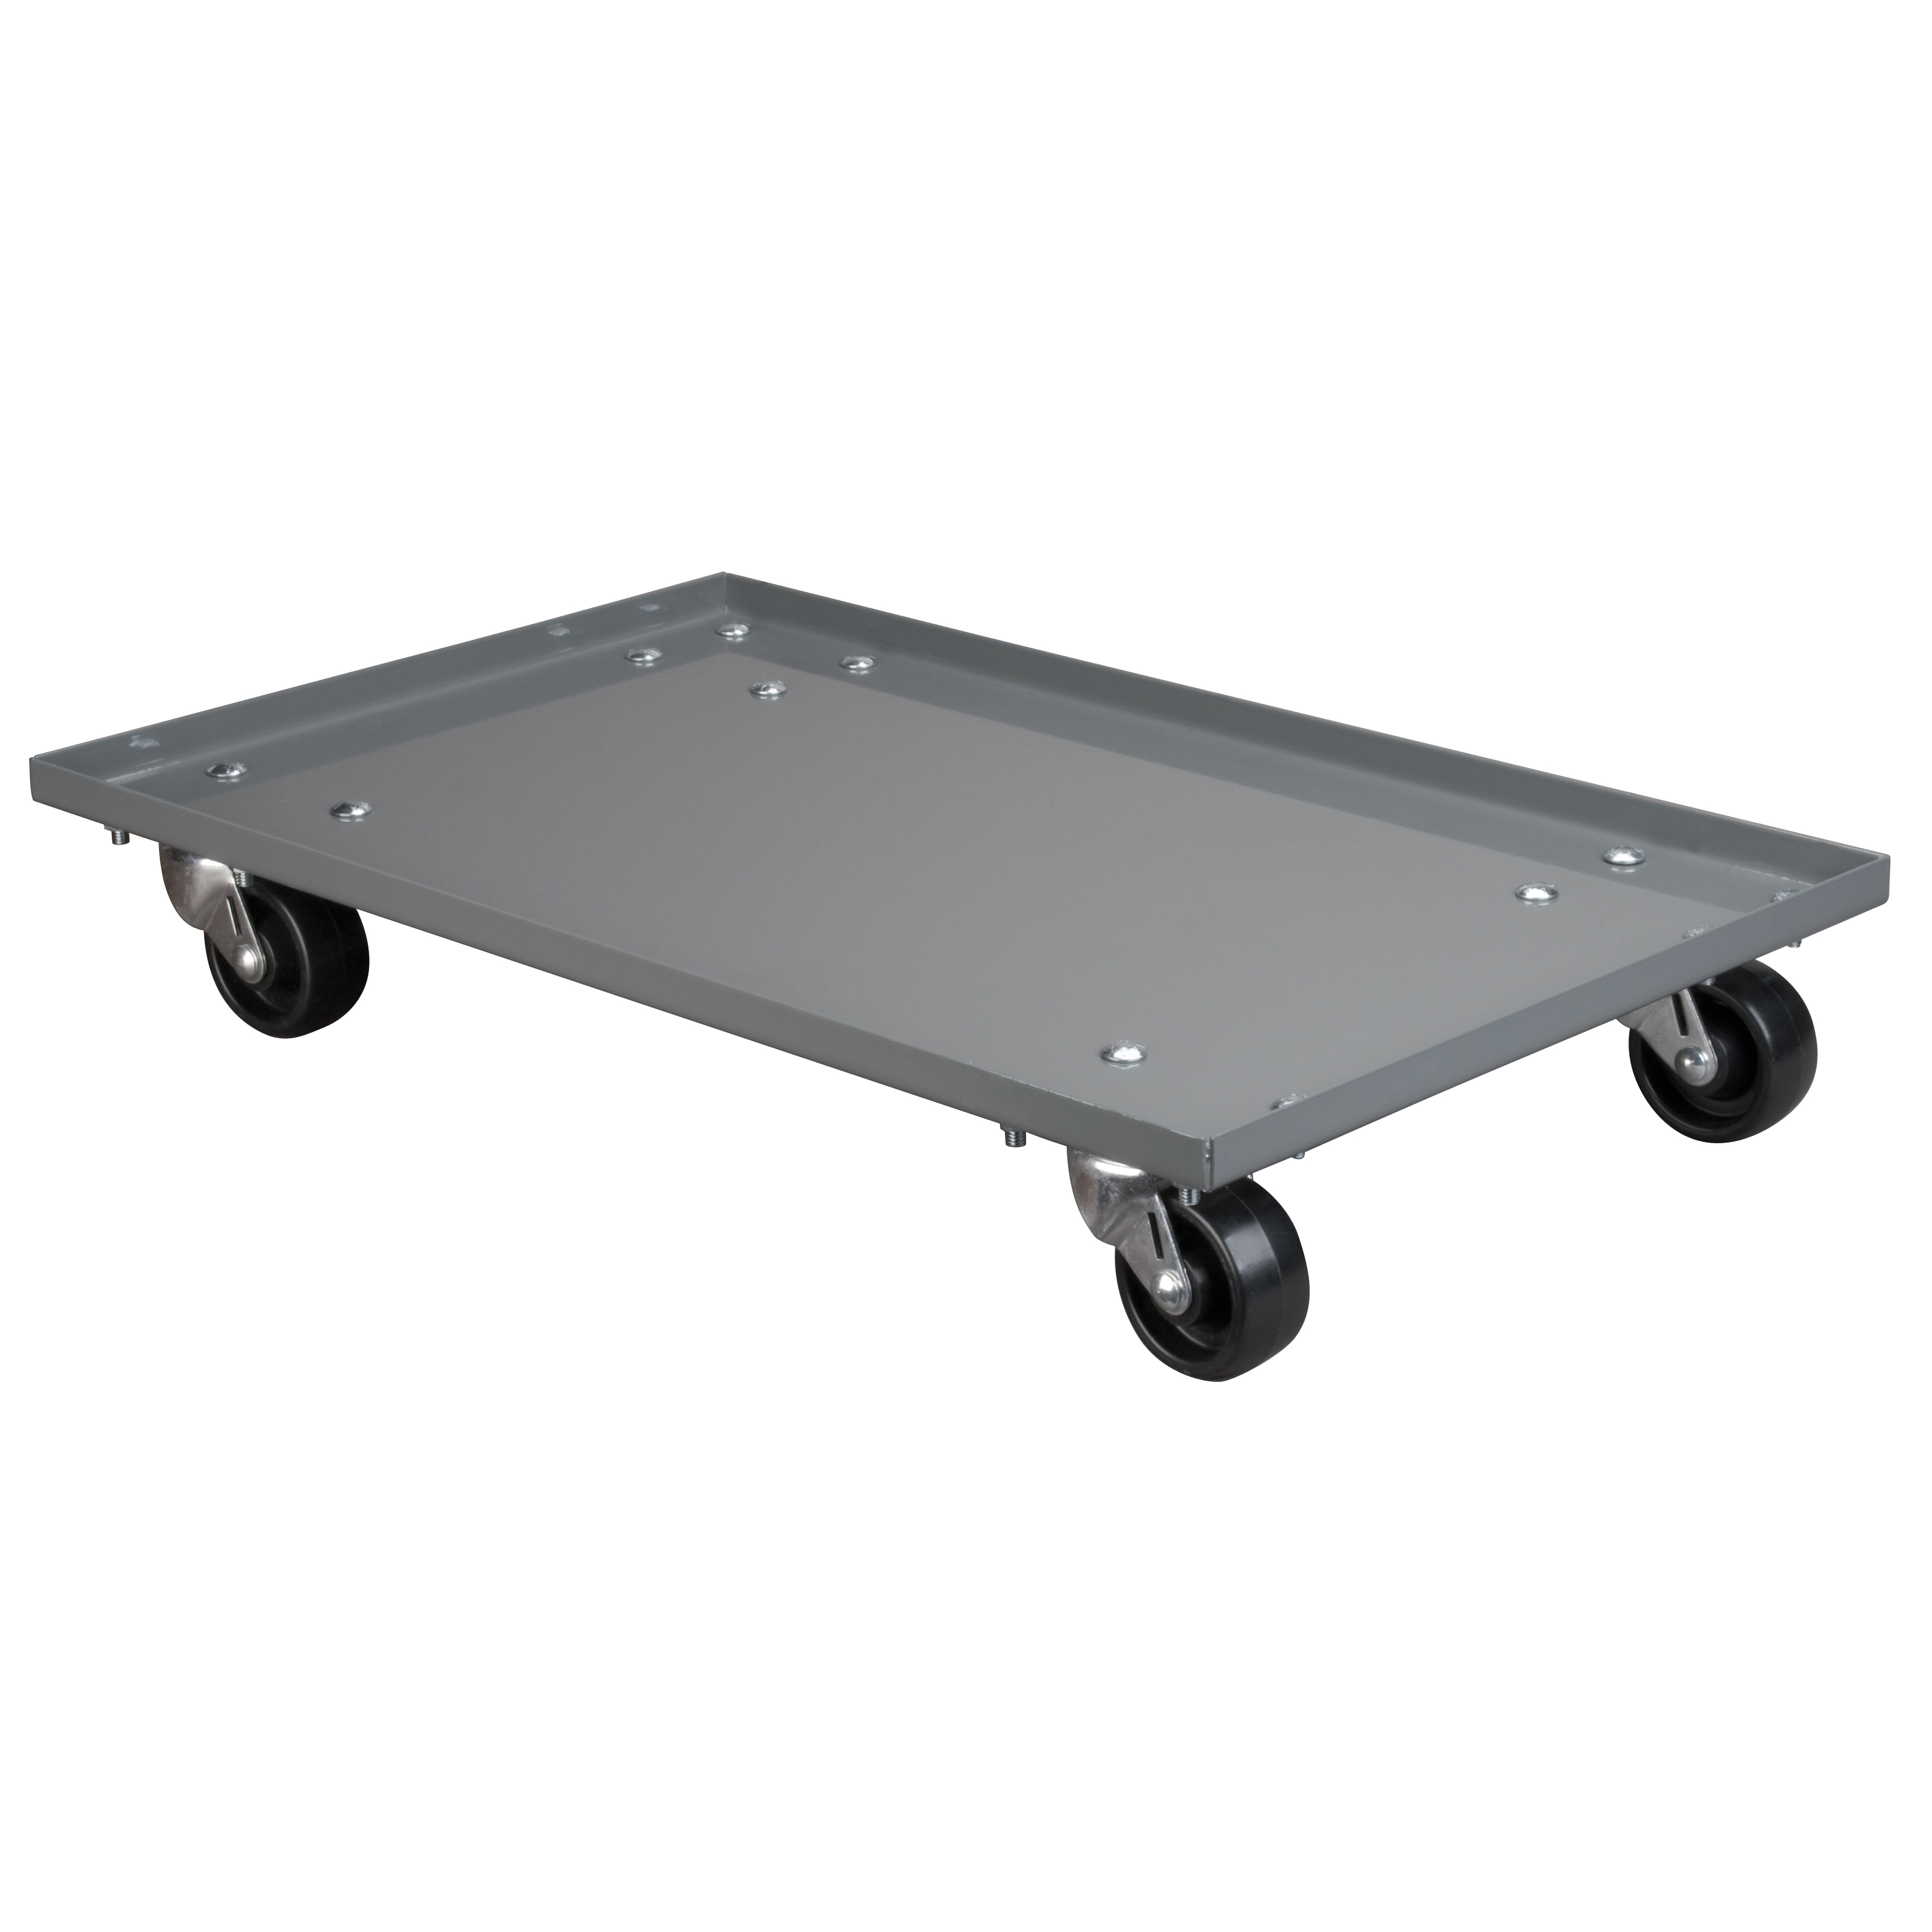 Item DISCONTINUED by Manufacturer.  Steel Dolly, 17x27, Lips Up, 3